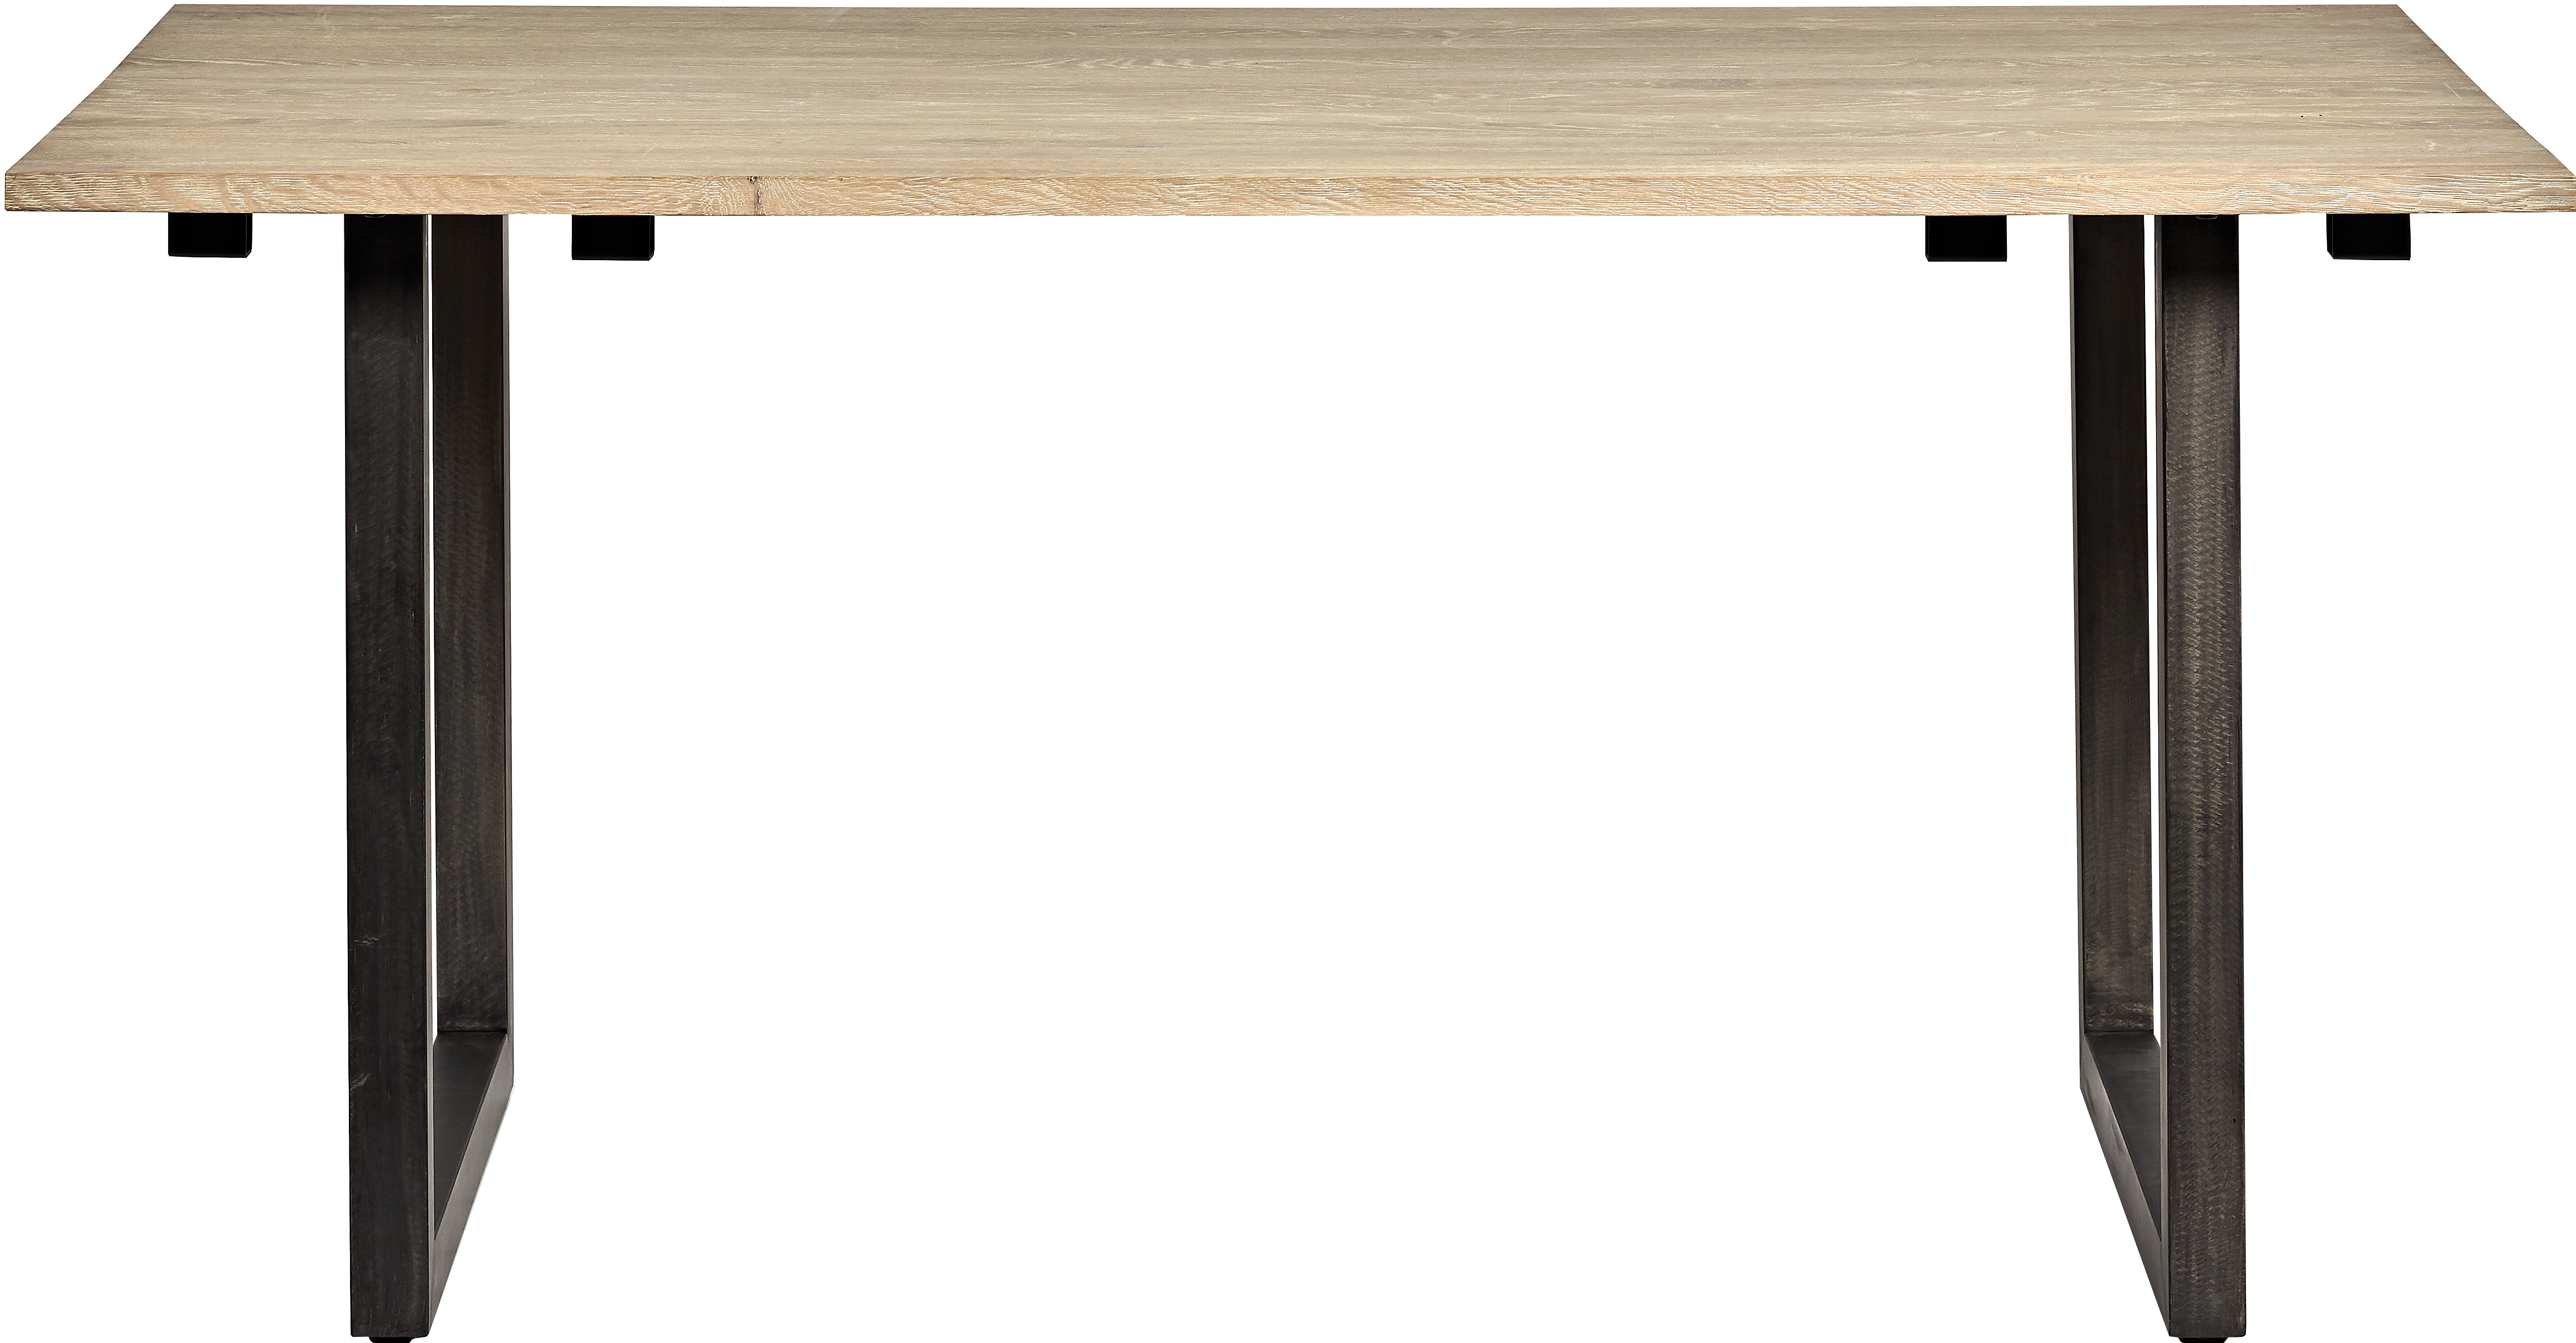 Carter 4-8 Seater Dining Table